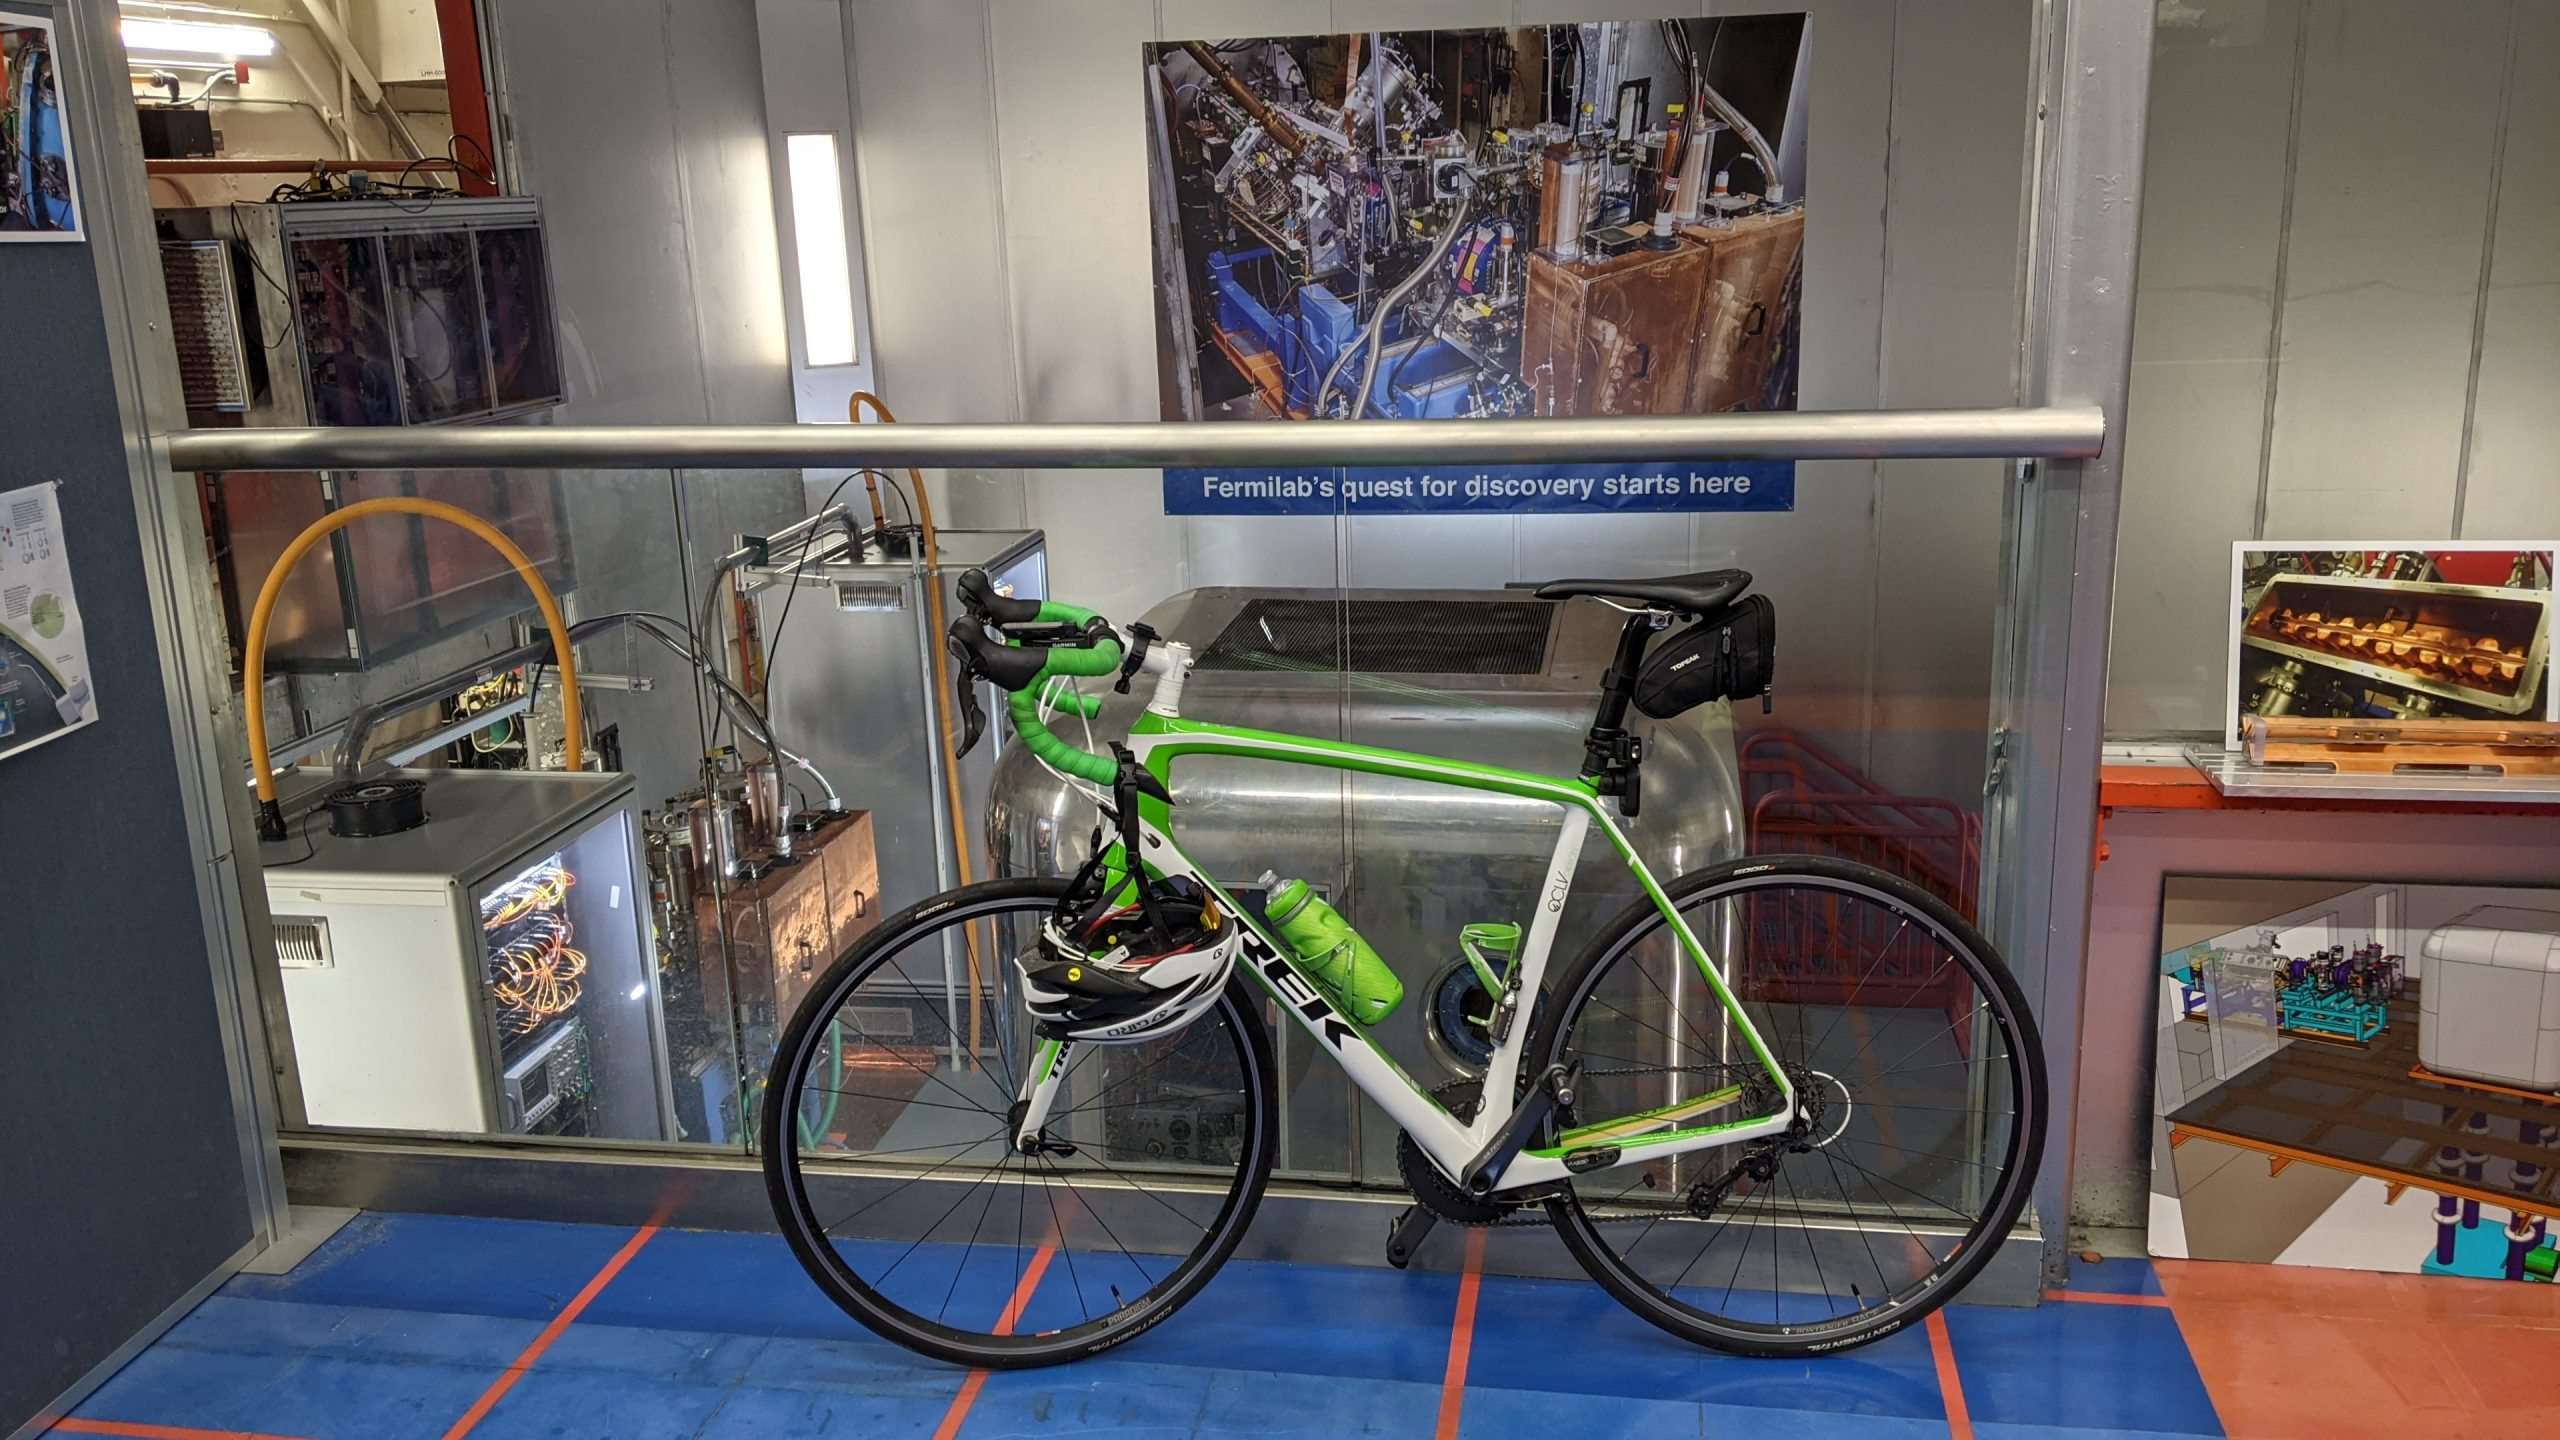 A white and green Trek bike on a blue and red striped floor with a glass wall and equipment behind.